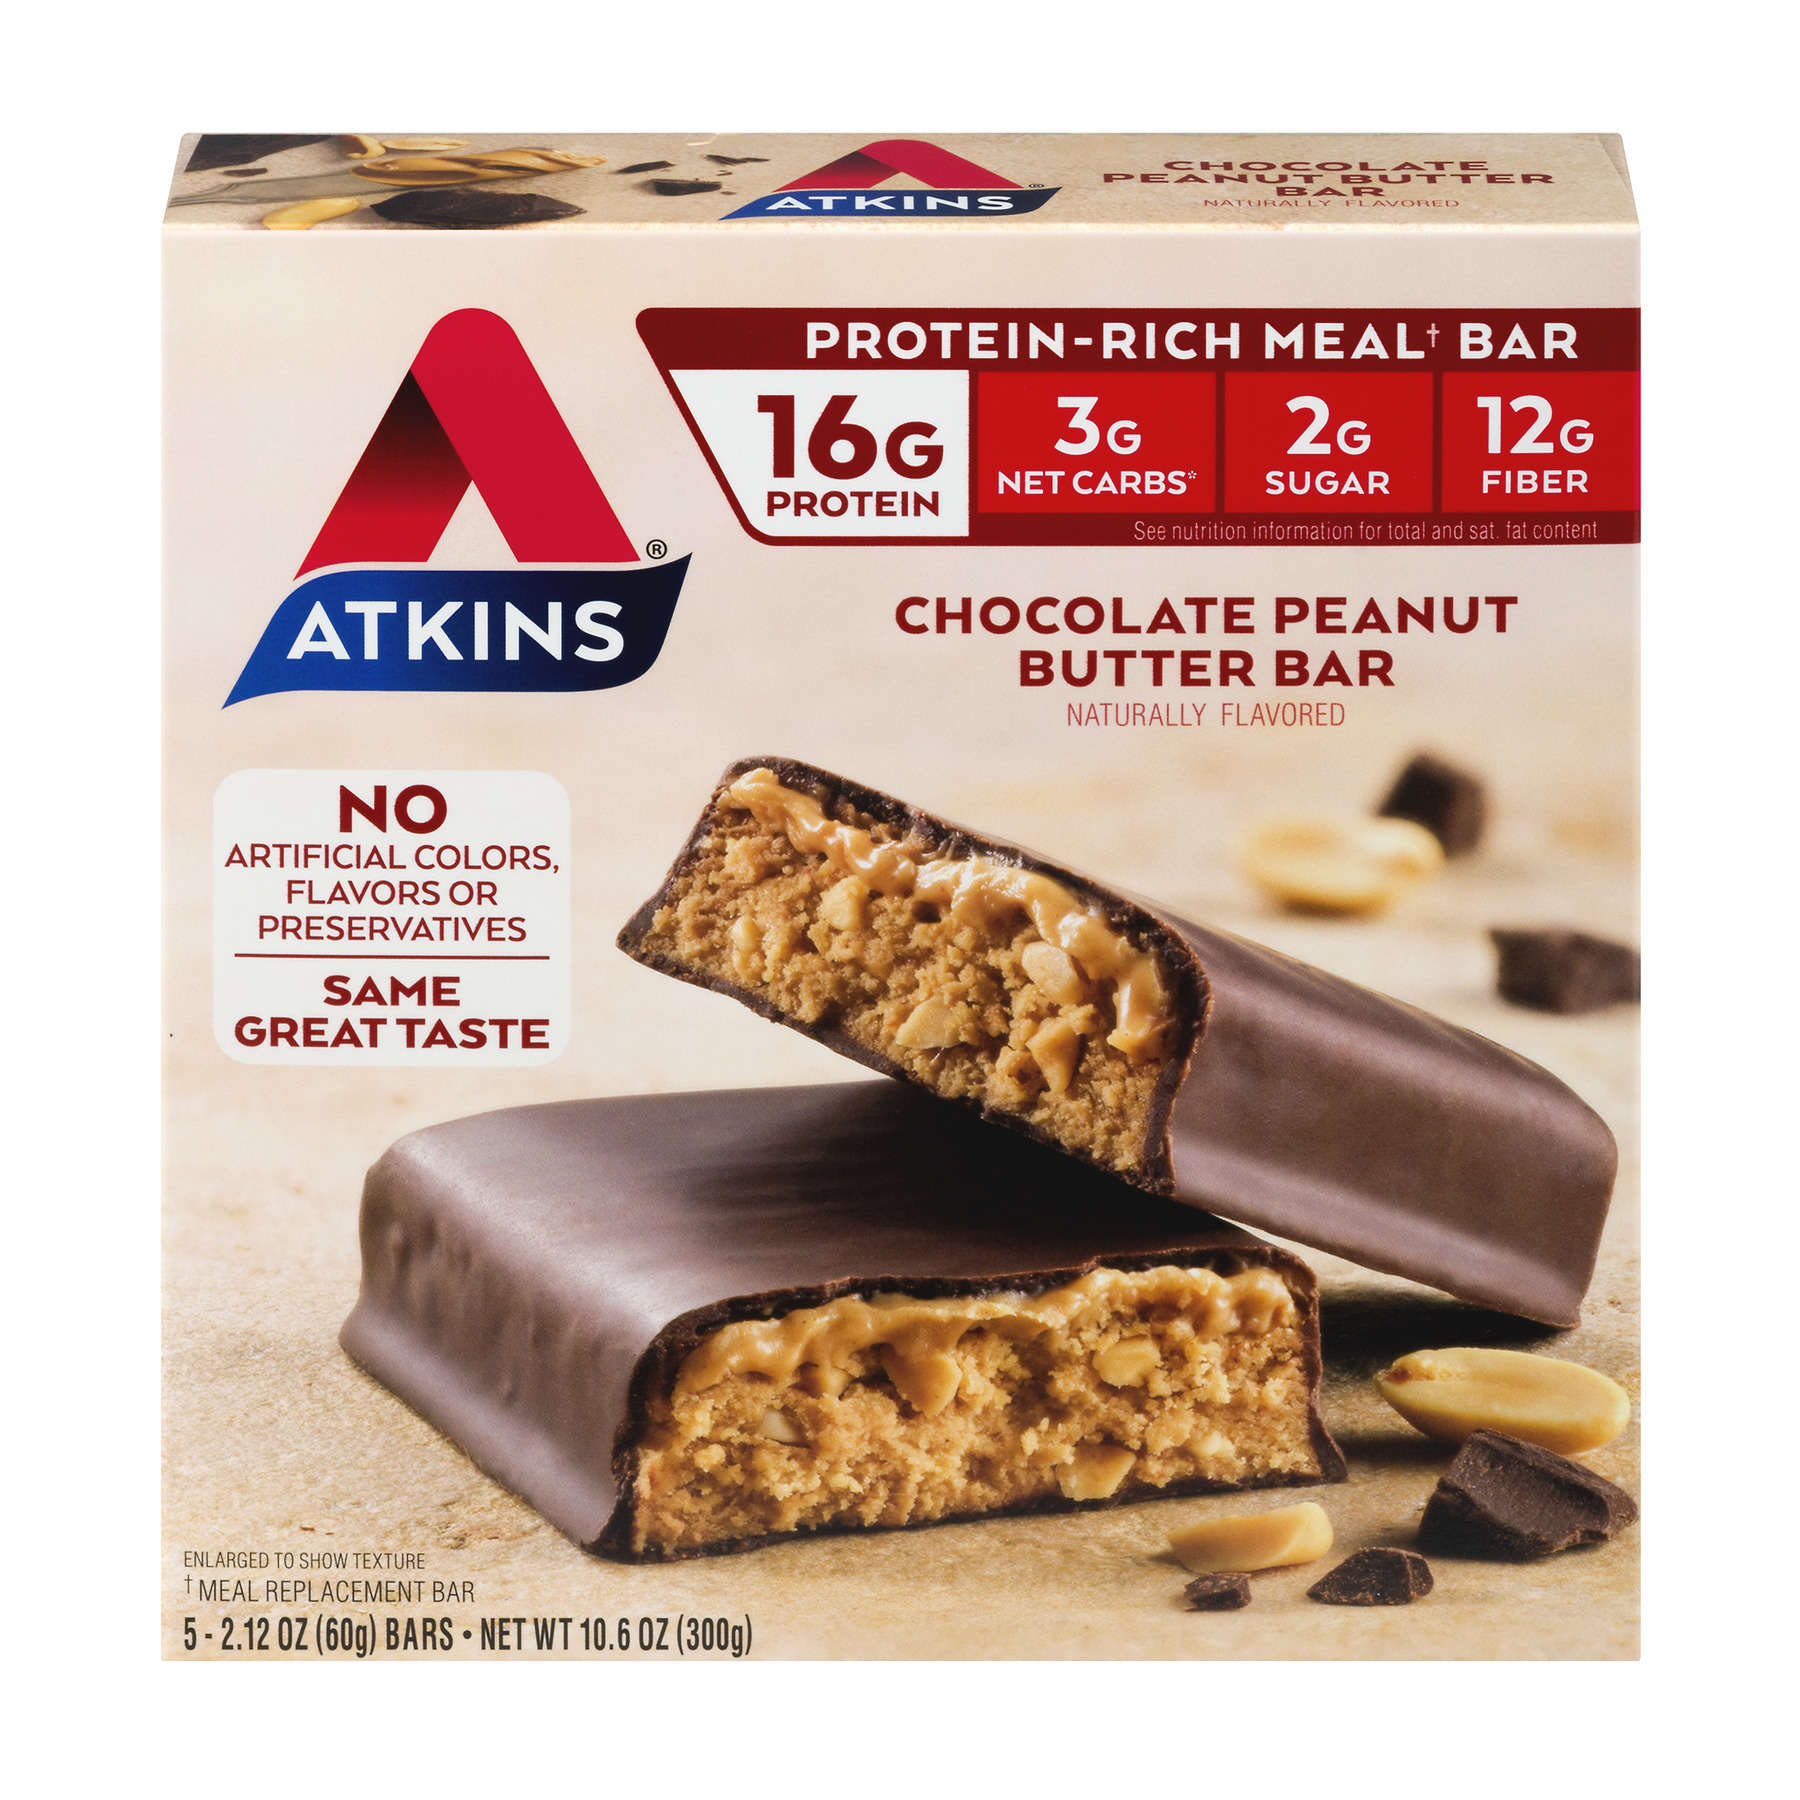 Atkins Chocolate Peanut Butter Bar, 2.1oz, 5-pack (Meal Replacement)